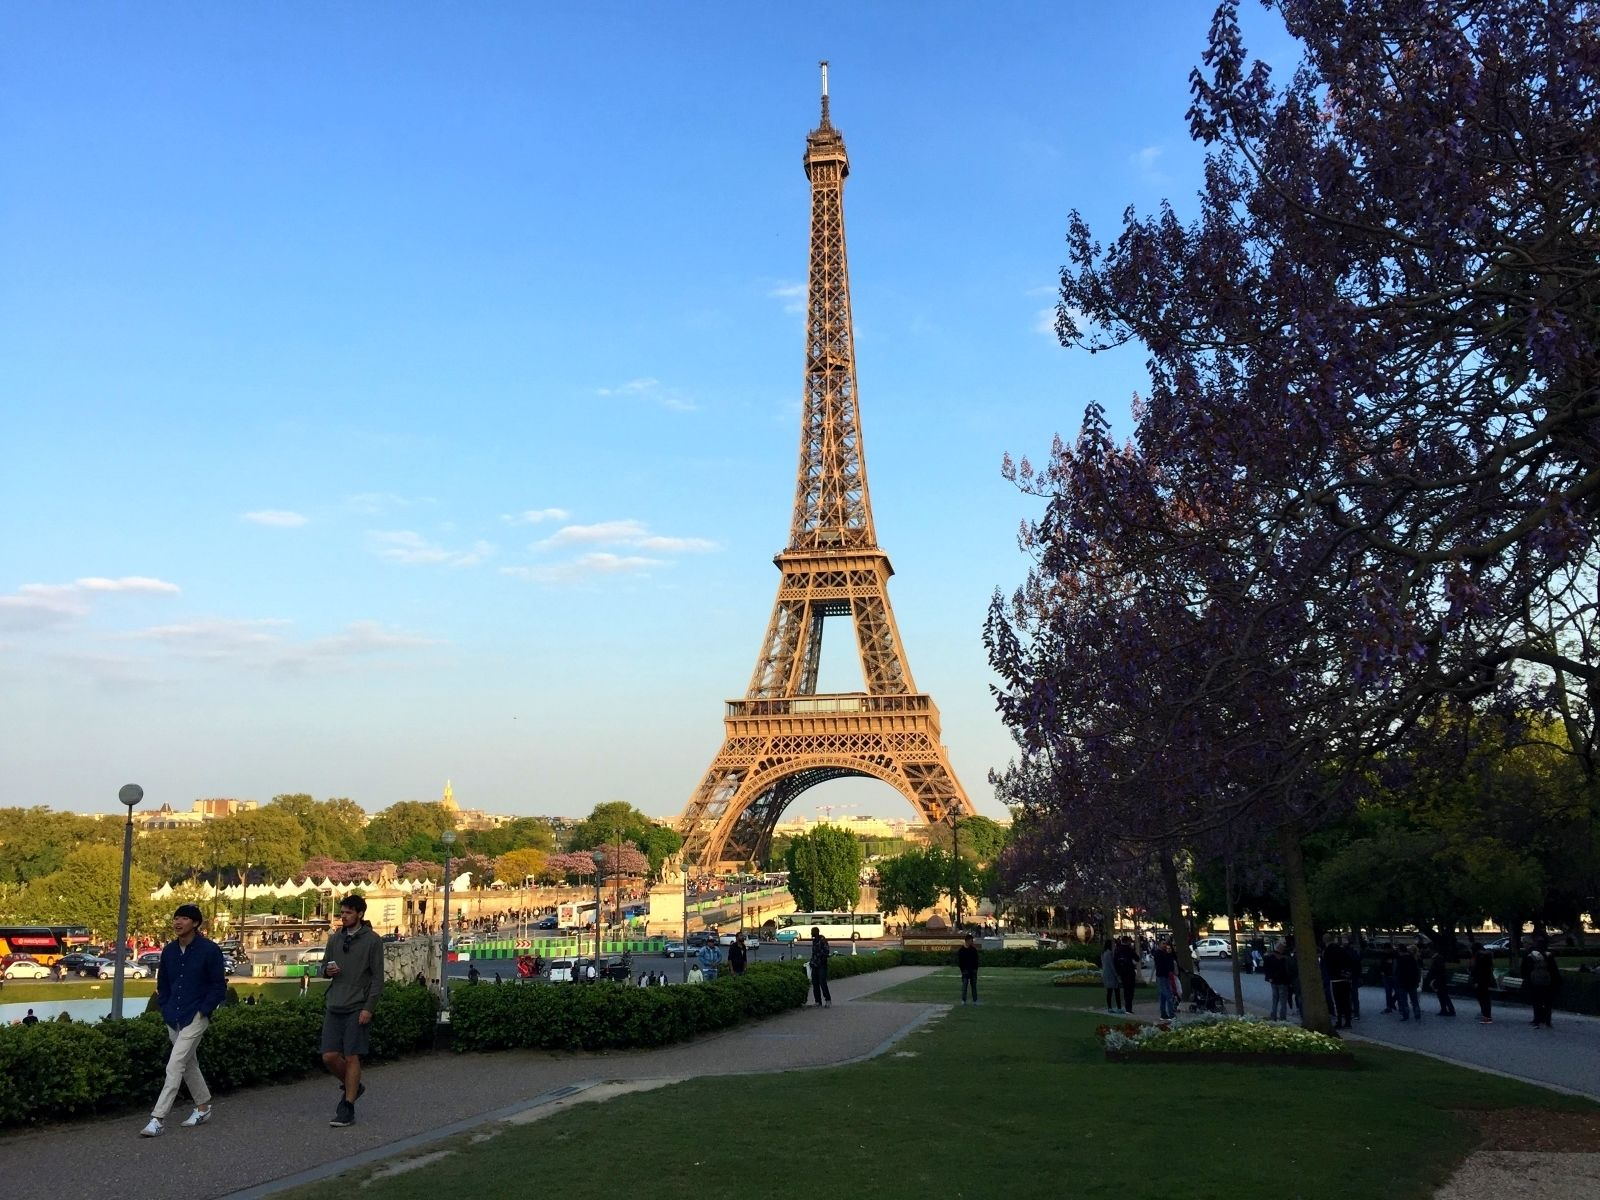 Landscape view of the Eiffel Tower